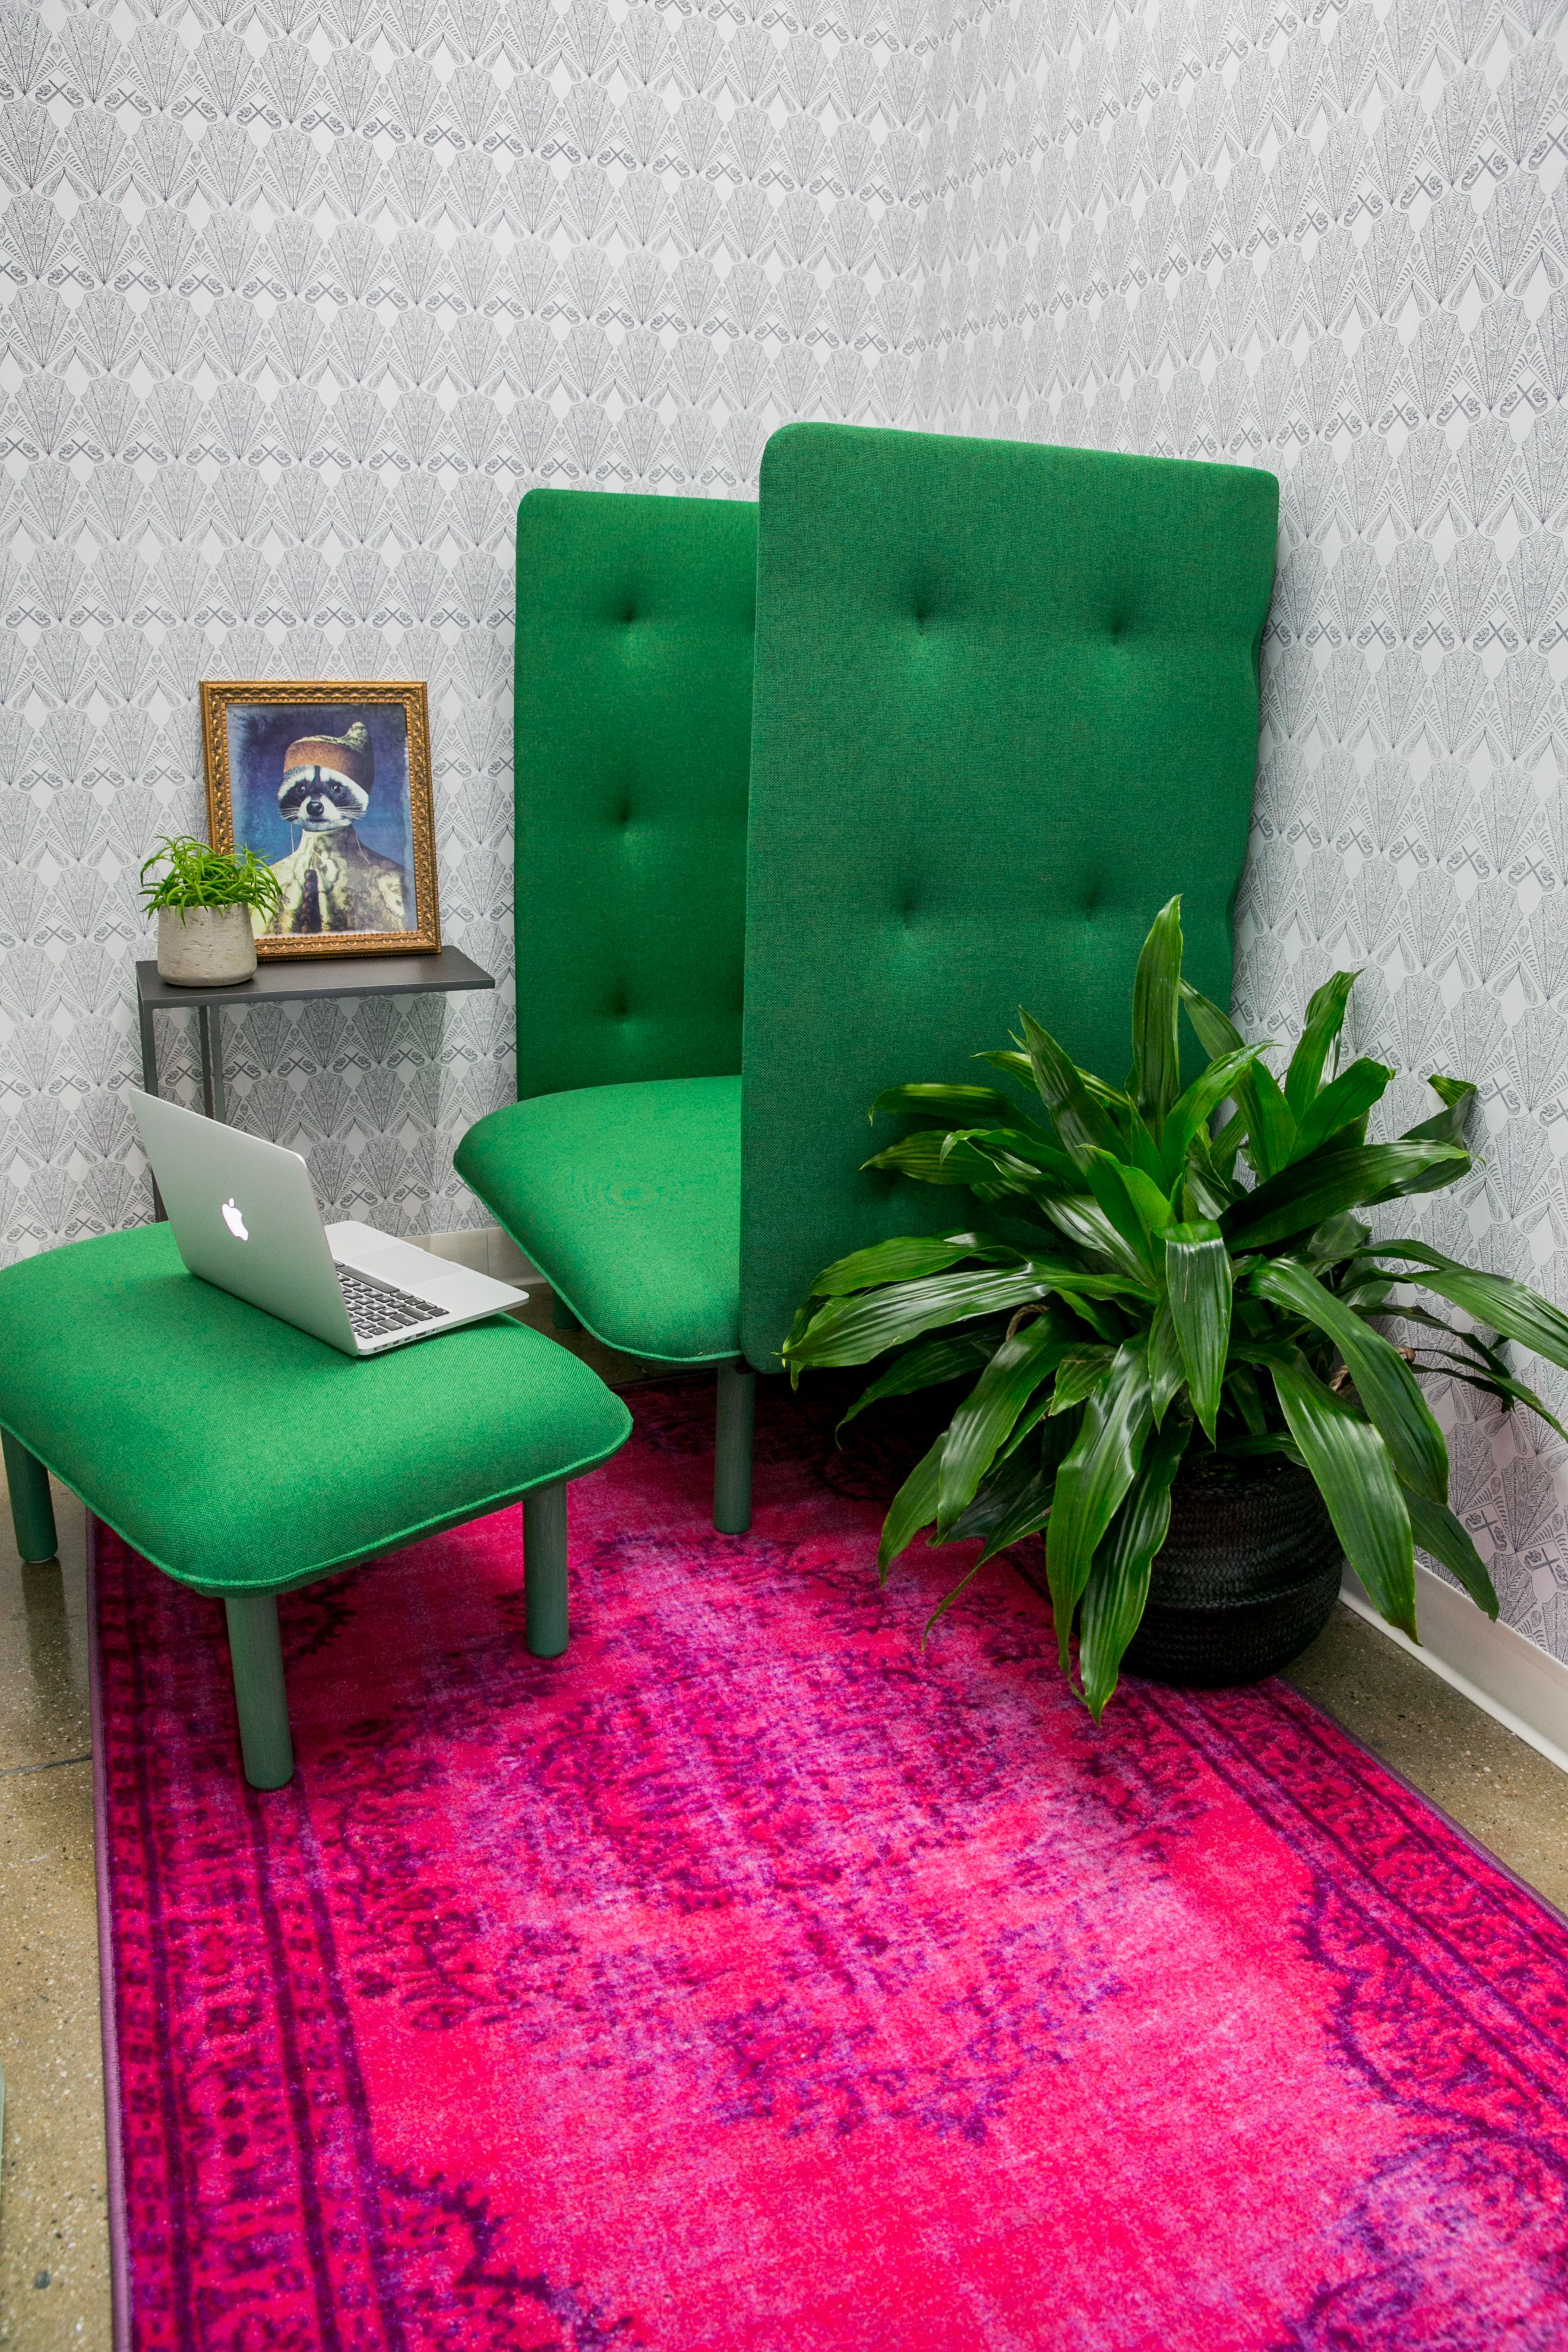 Private room for a private call lactation praying or just quite time. Green & Private room for a private call lactation praying or just quite ...